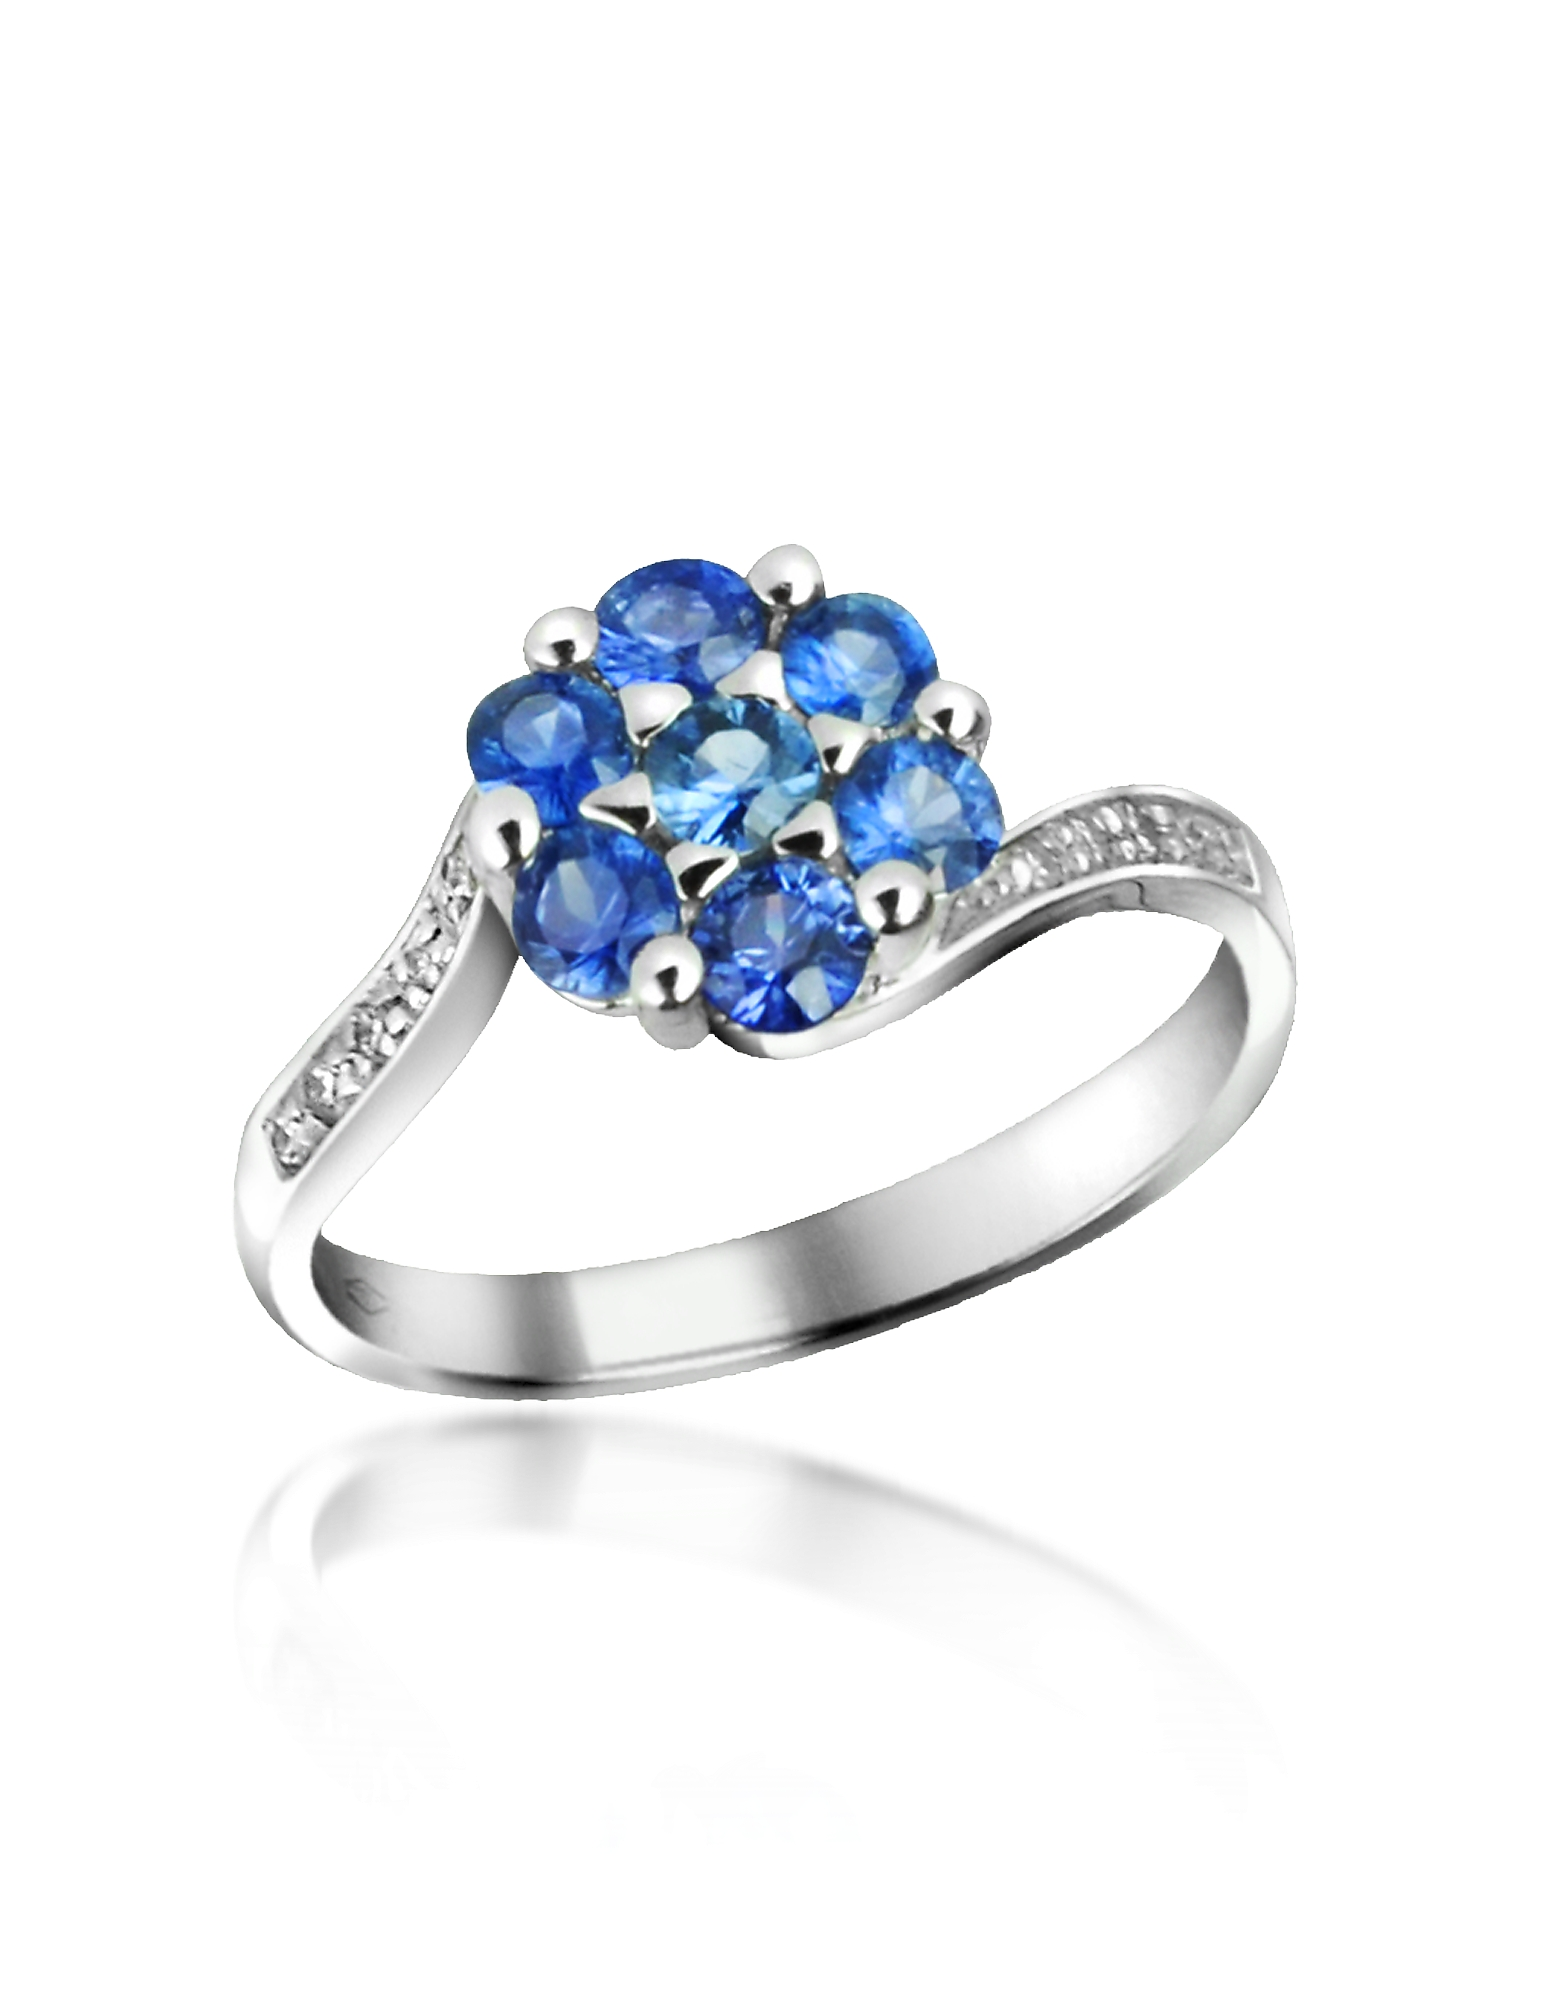 Incanto Royale Rings, Sapphire and Diamond 18K Gold Ring